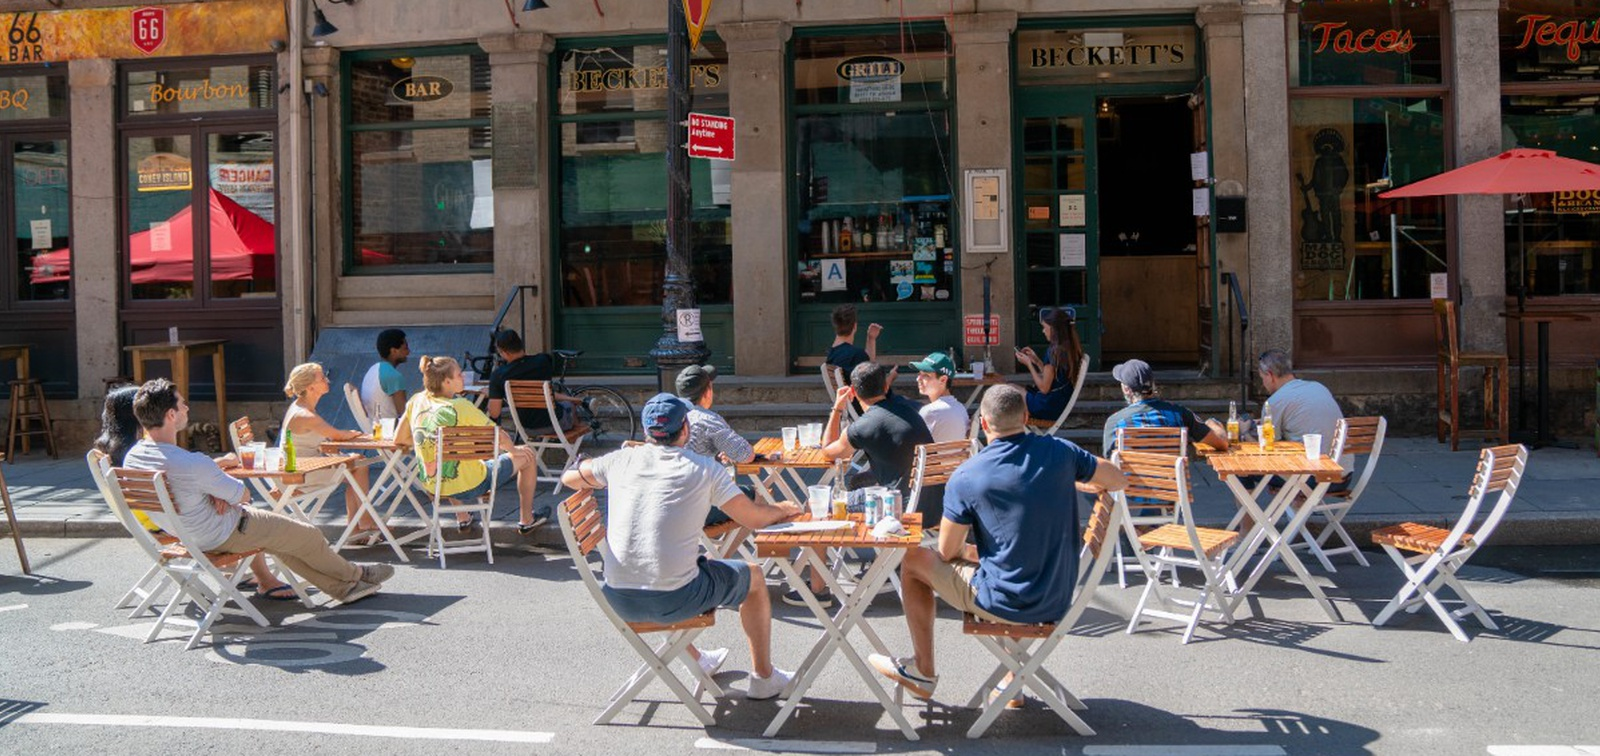 Consumers want curbside, outdoor dining to stay in 2021: survey